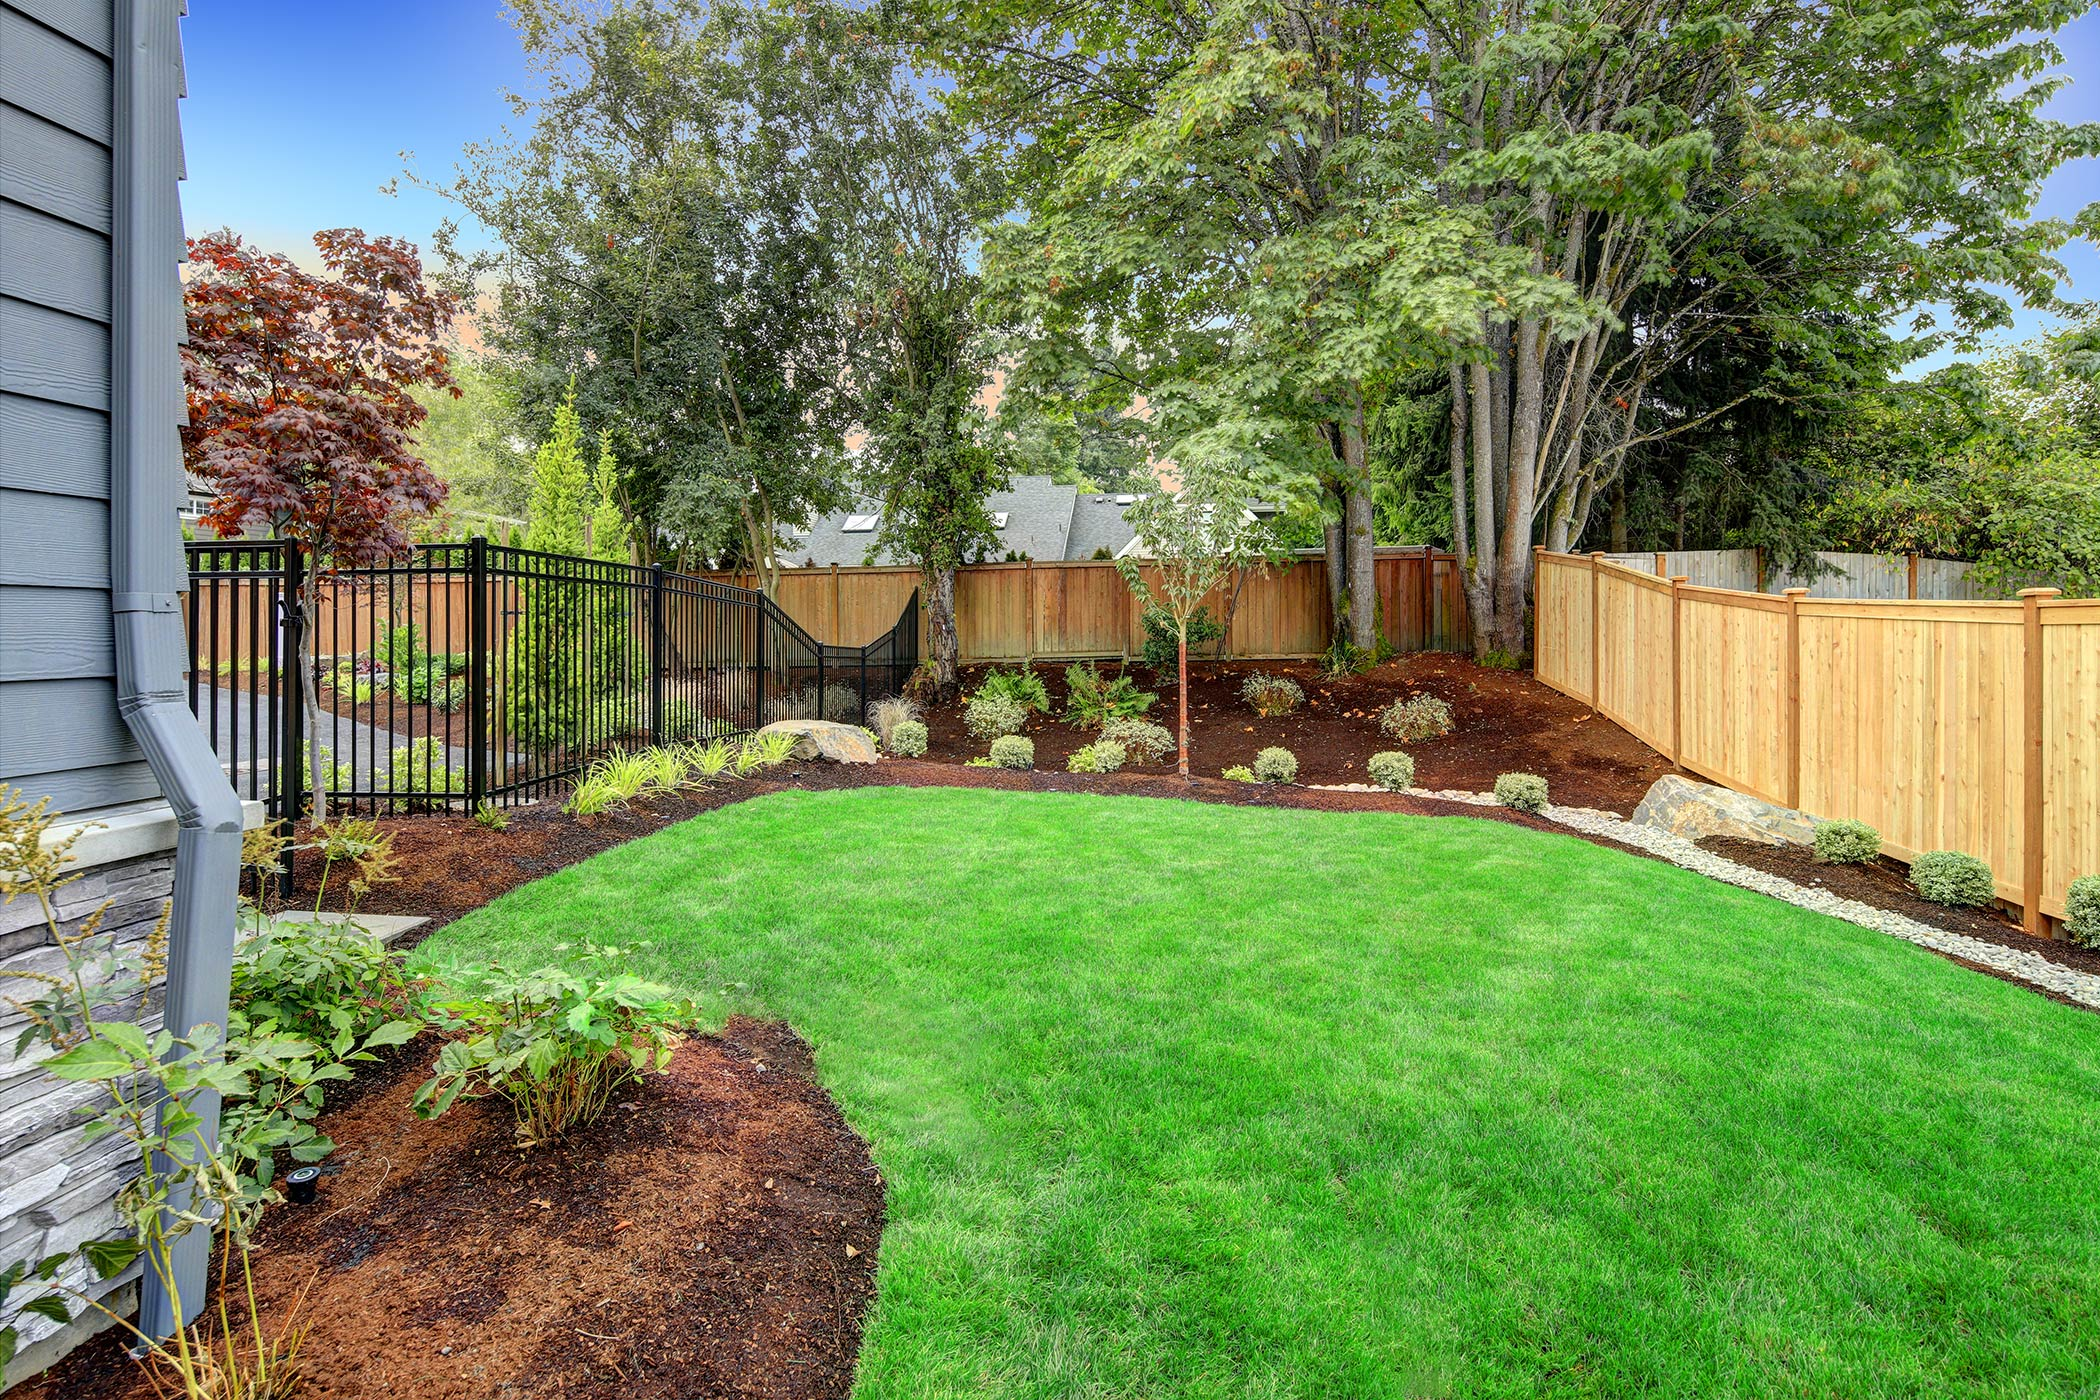 green grass in a yard surrounded by landscaped flower beds